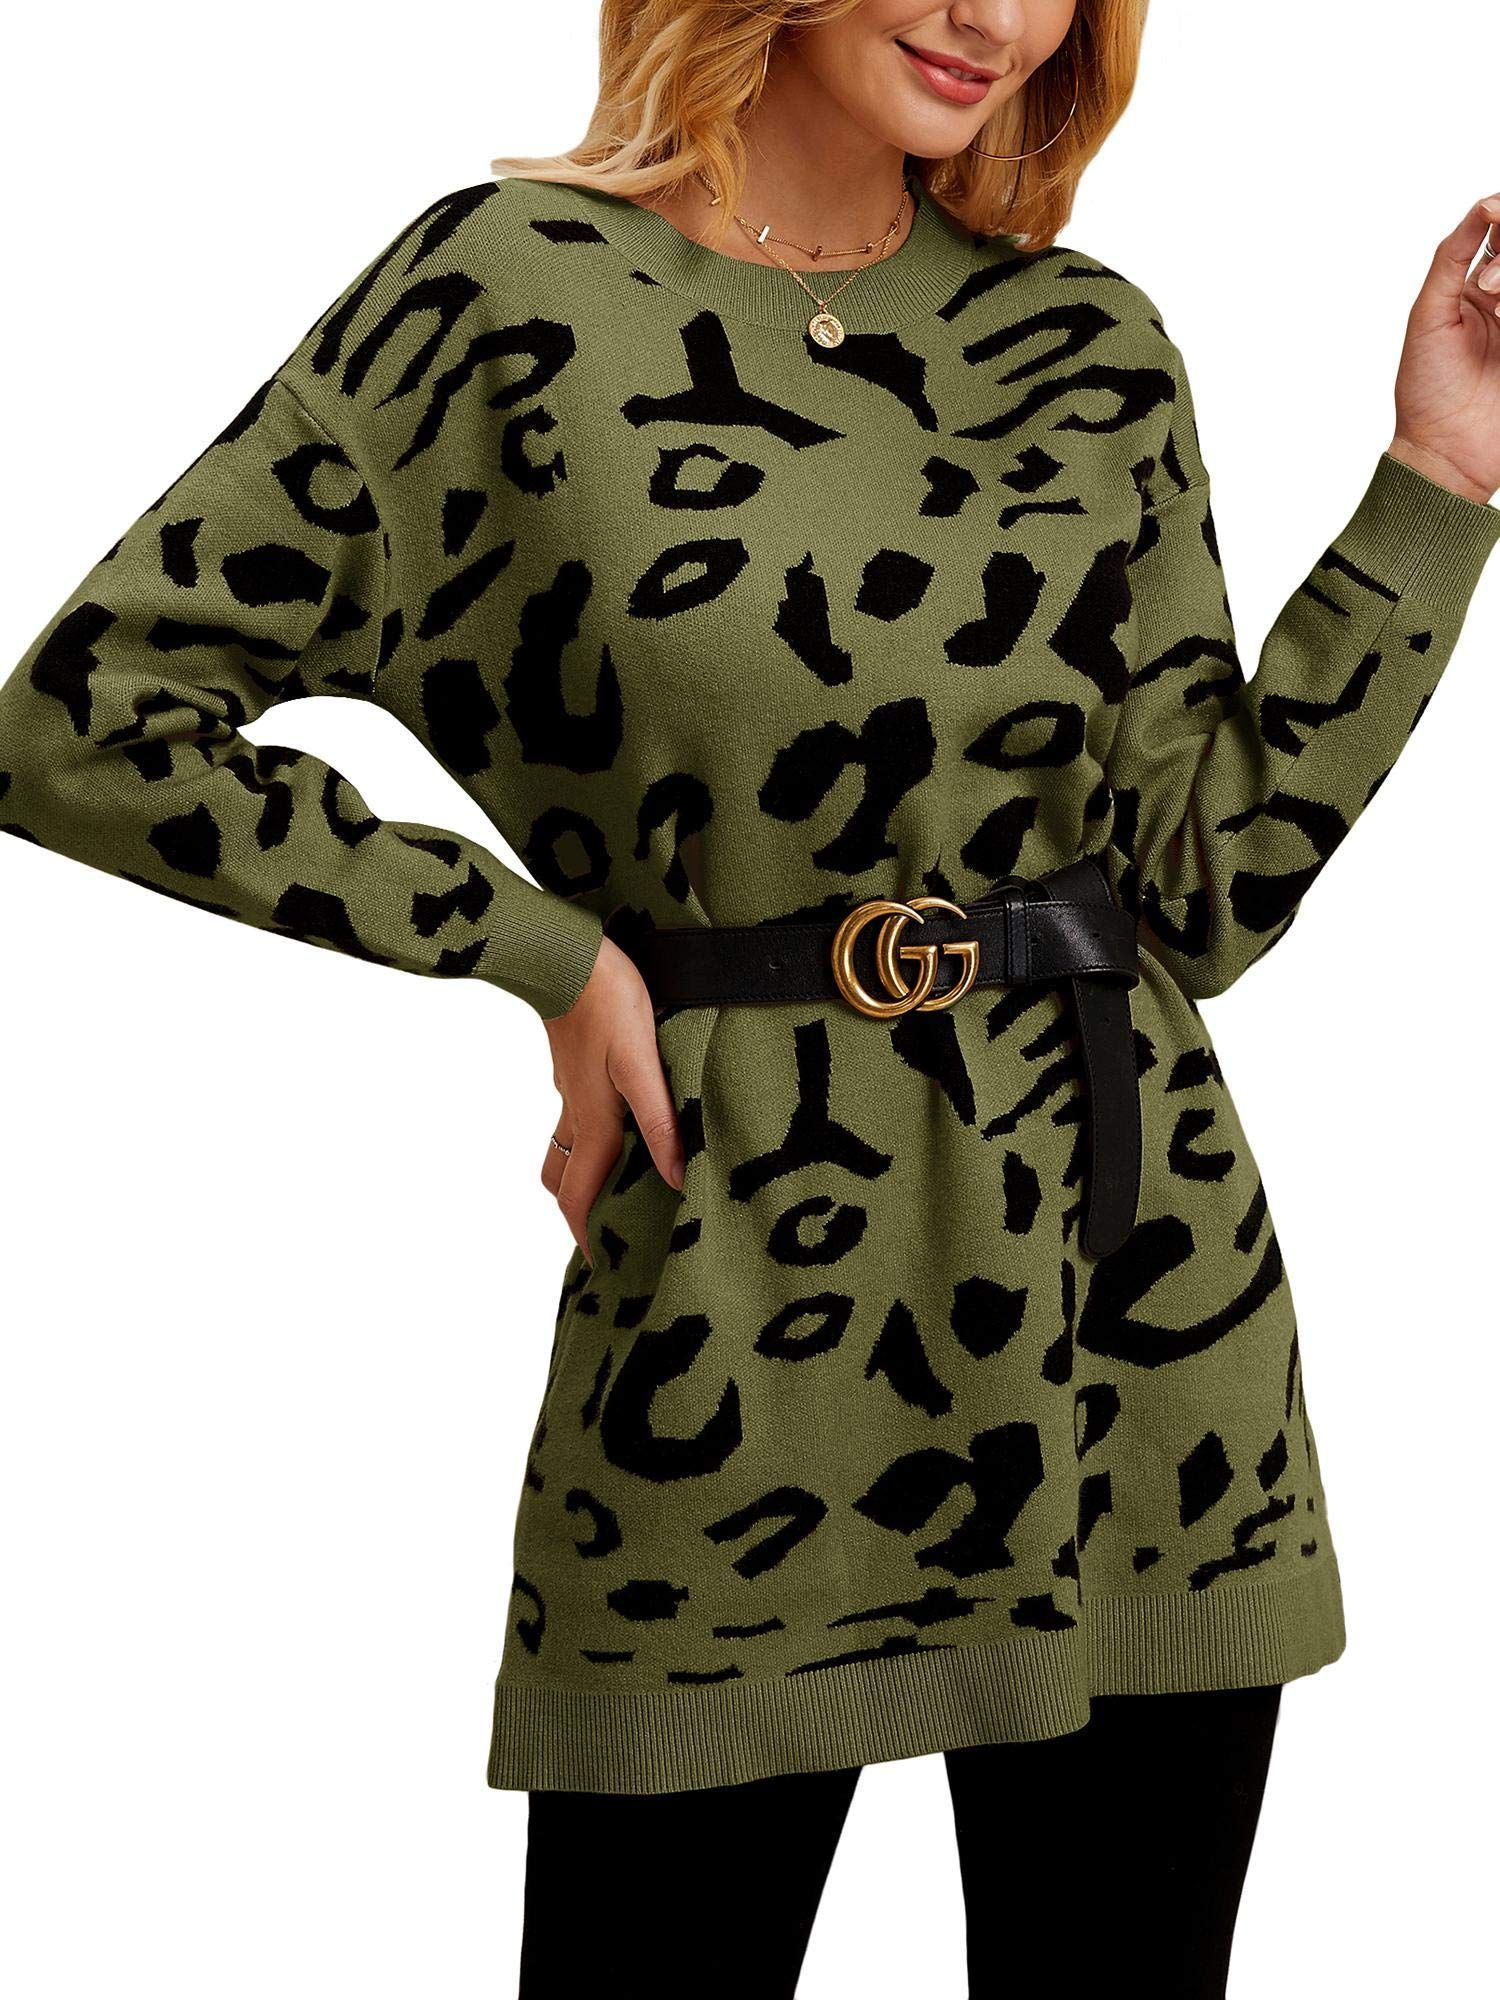 Tutorutor Womens Leopard Print Sweater Dresses Oversized Crew Neck Long Sleeve Loose Fit Chunky Knit Jumper Pullovers #chunkyknitjumper Tutorutor Womens Leopard Print Sweater Dresses Oversized Crew Neck Long Sleeve Loose Fit Chunky Knit Jumper Pullovers #Affiliate #chunkyknitjumper